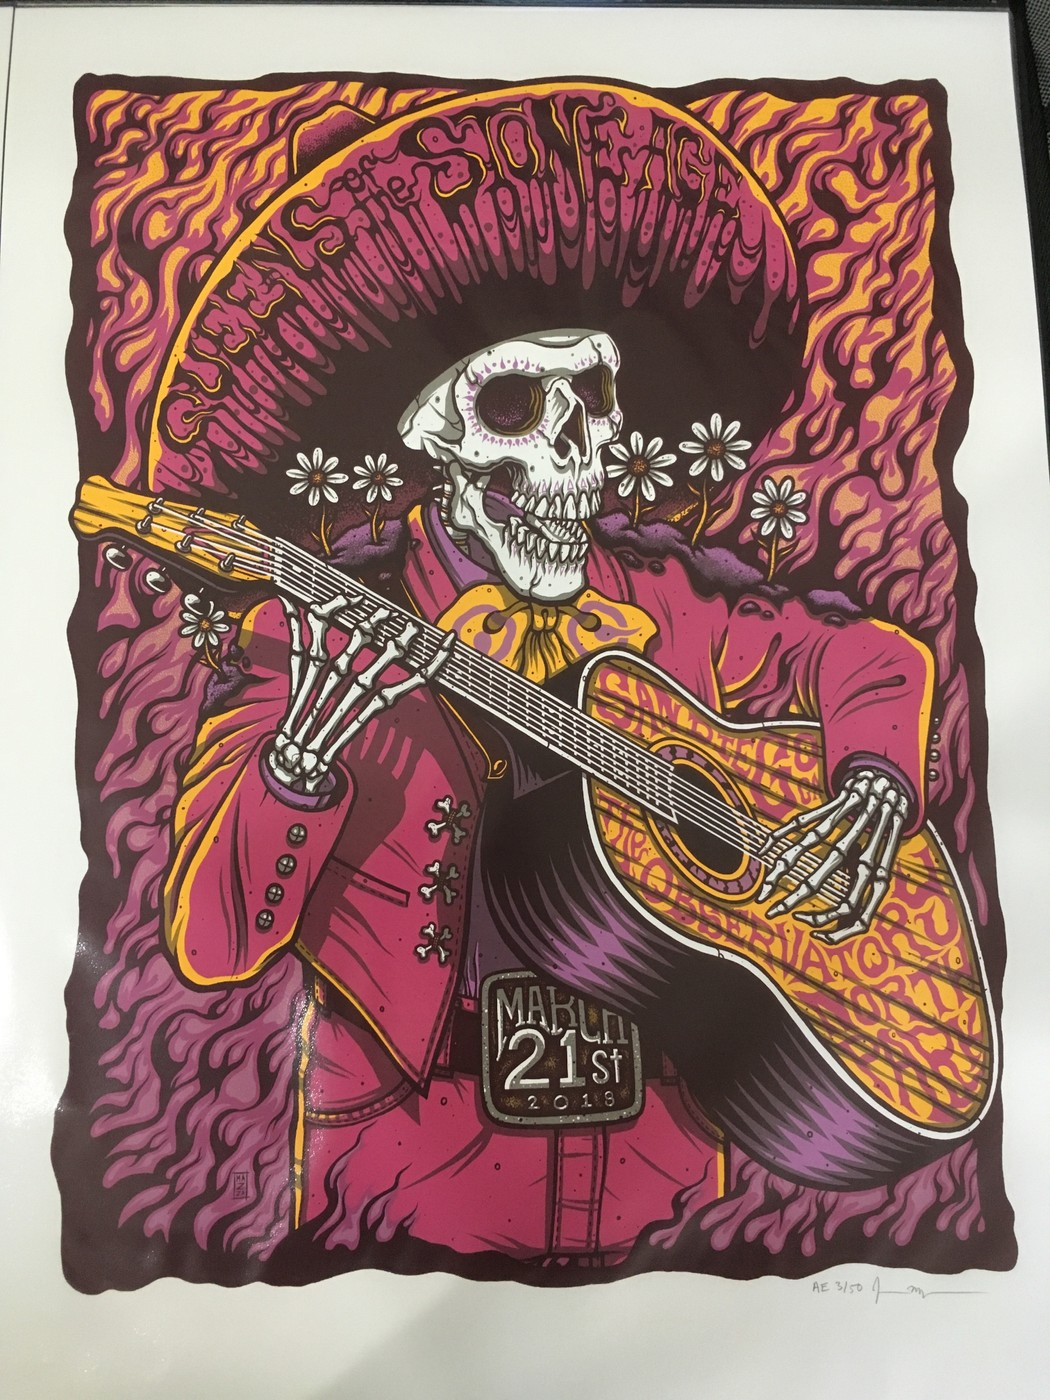 queens of the stone age 3 21 18 san diego concert poster mazza